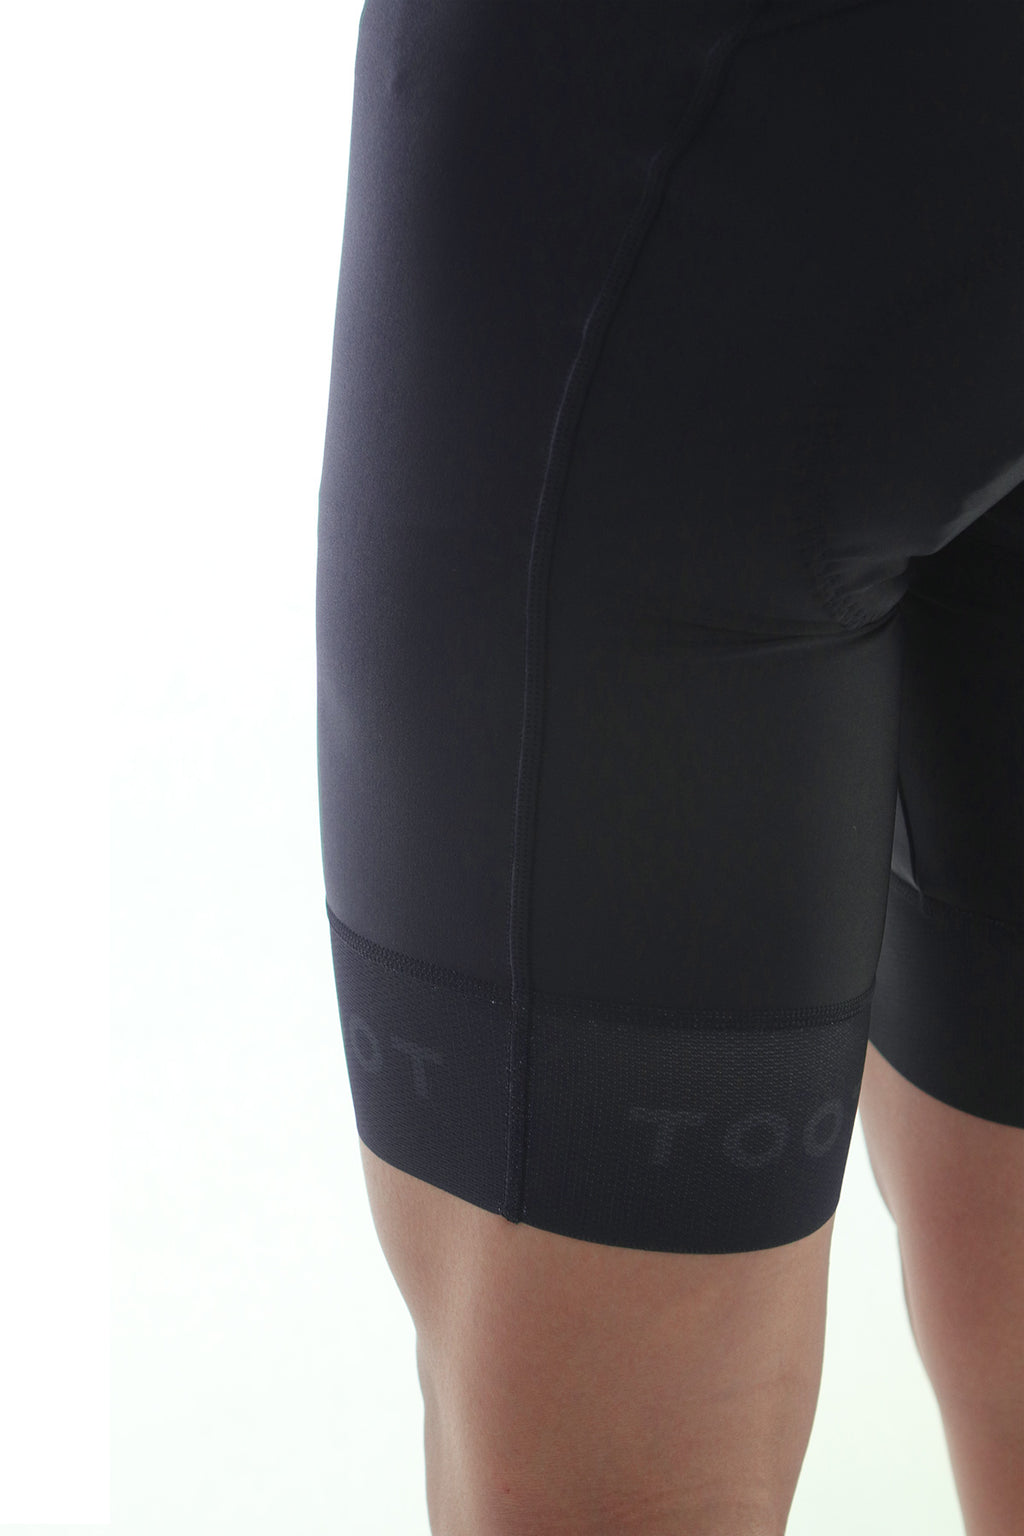 MENS CYCLING SHORTS - STEALTH BLACK